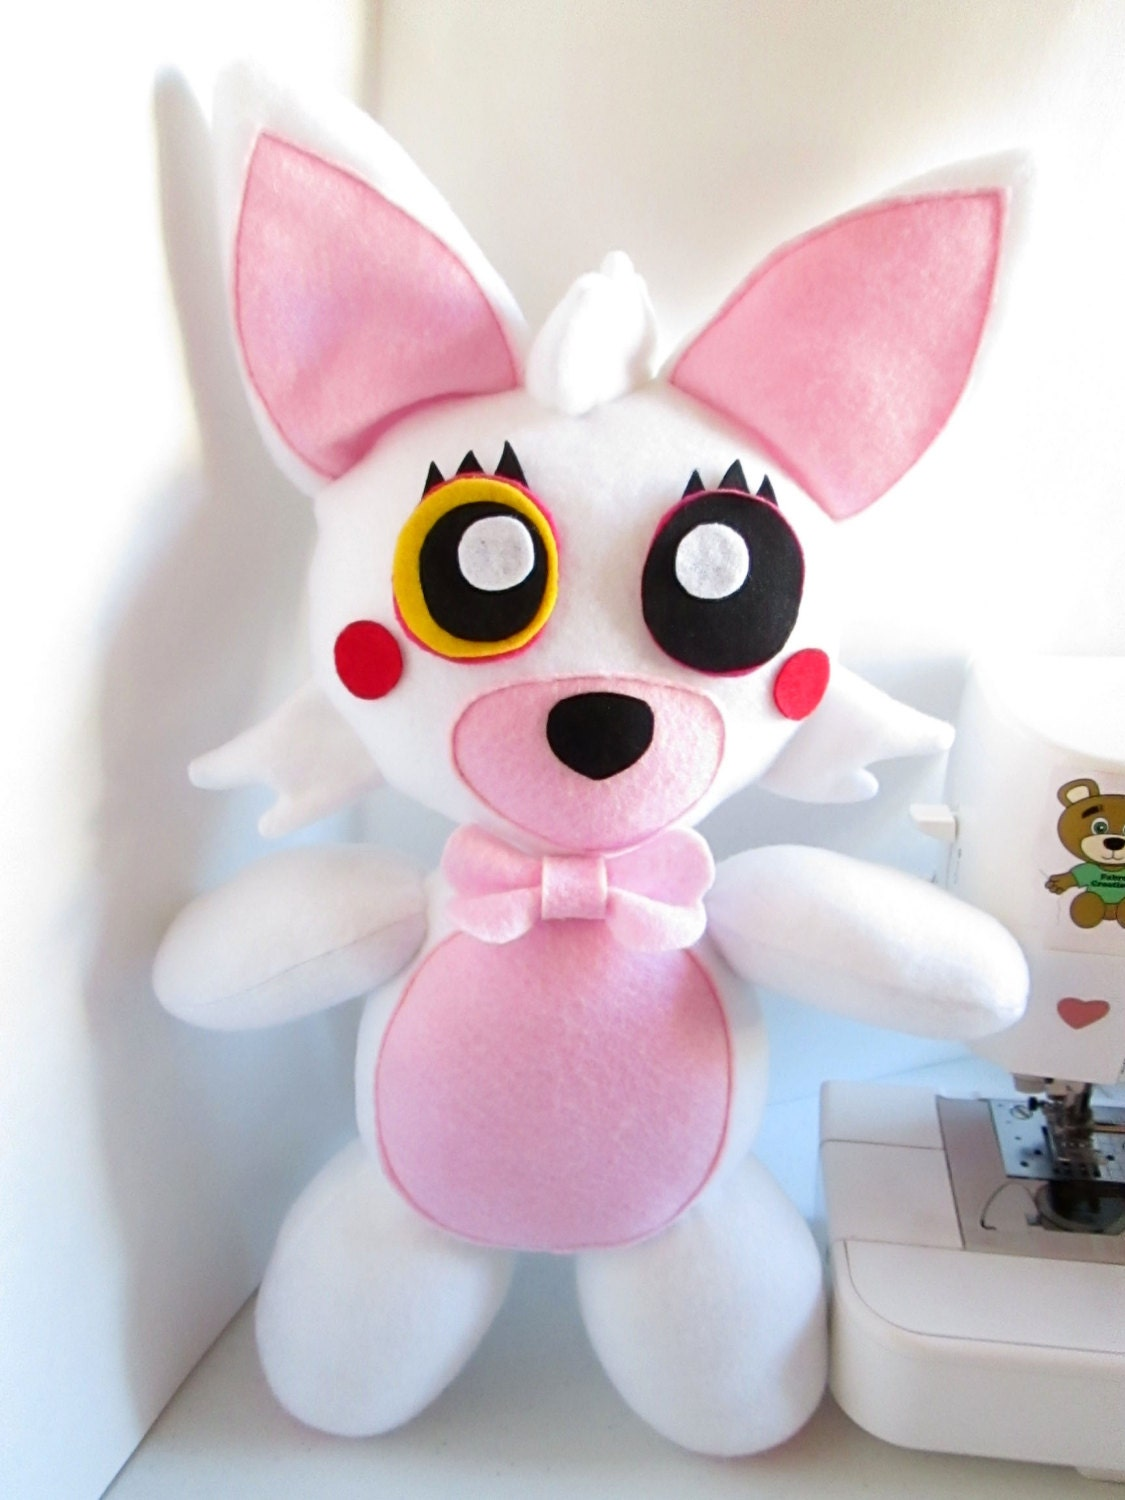 Mangle plushie for sale myideasbedroom com - Fnaf Plush S For Sale Myideasbedroom Com Fnaf Plushies Order Myideasbedroom Com